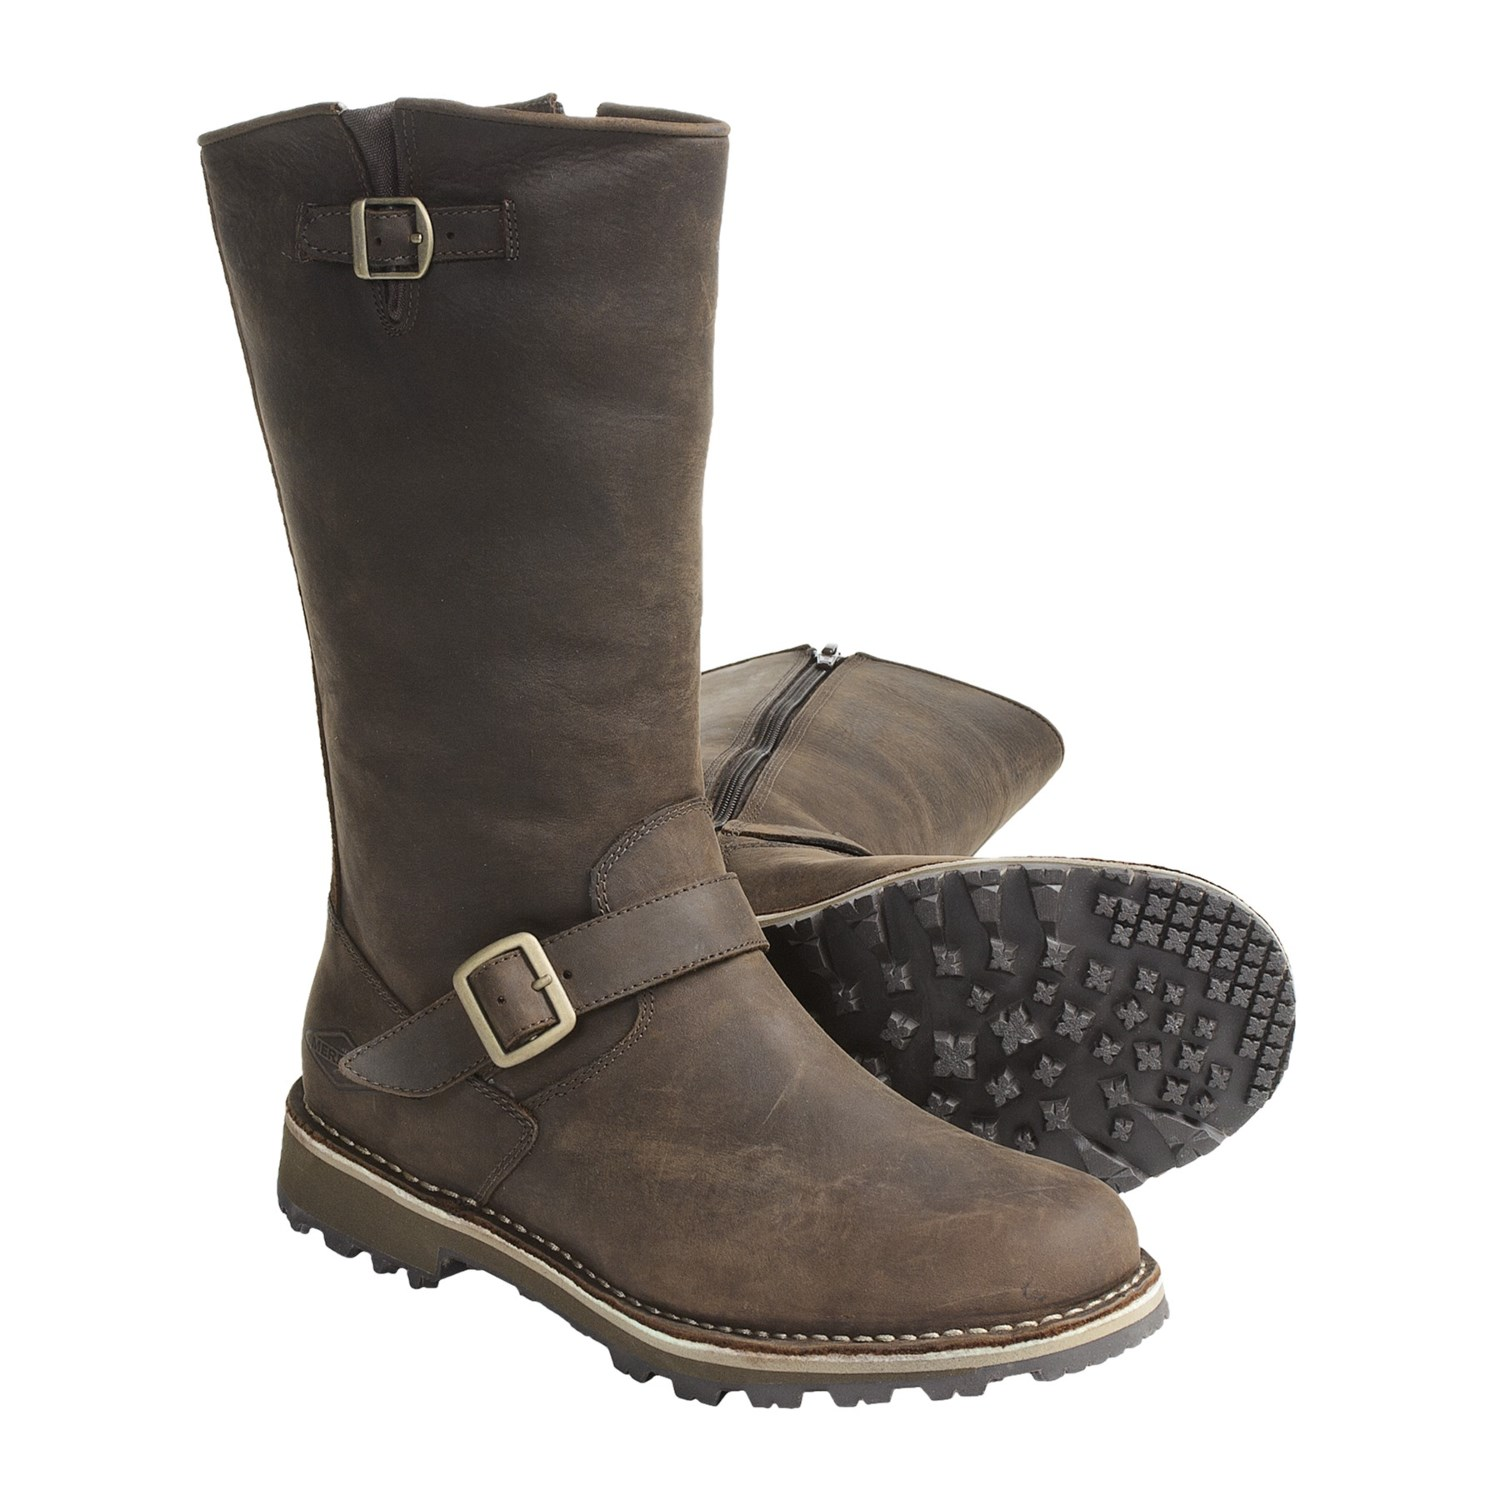 merrell wilderness remix boots leather insulated for